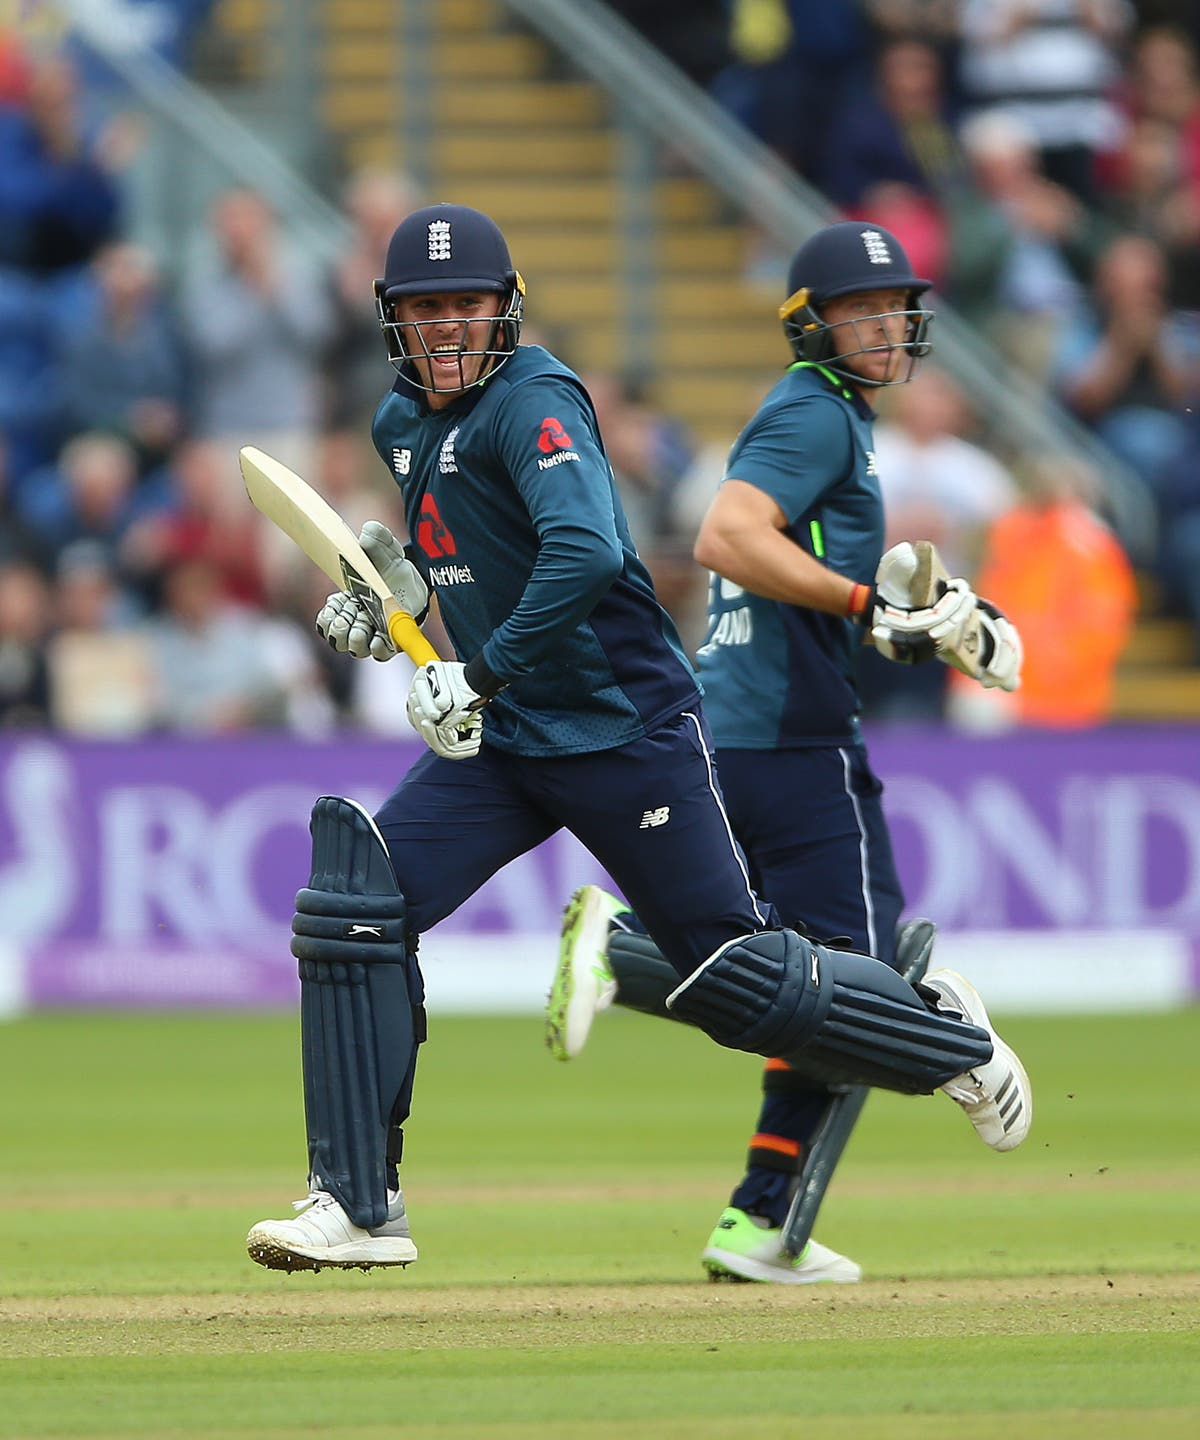 Jos Buttler: Opening batting made easier by Jason Roy's intimidating presence